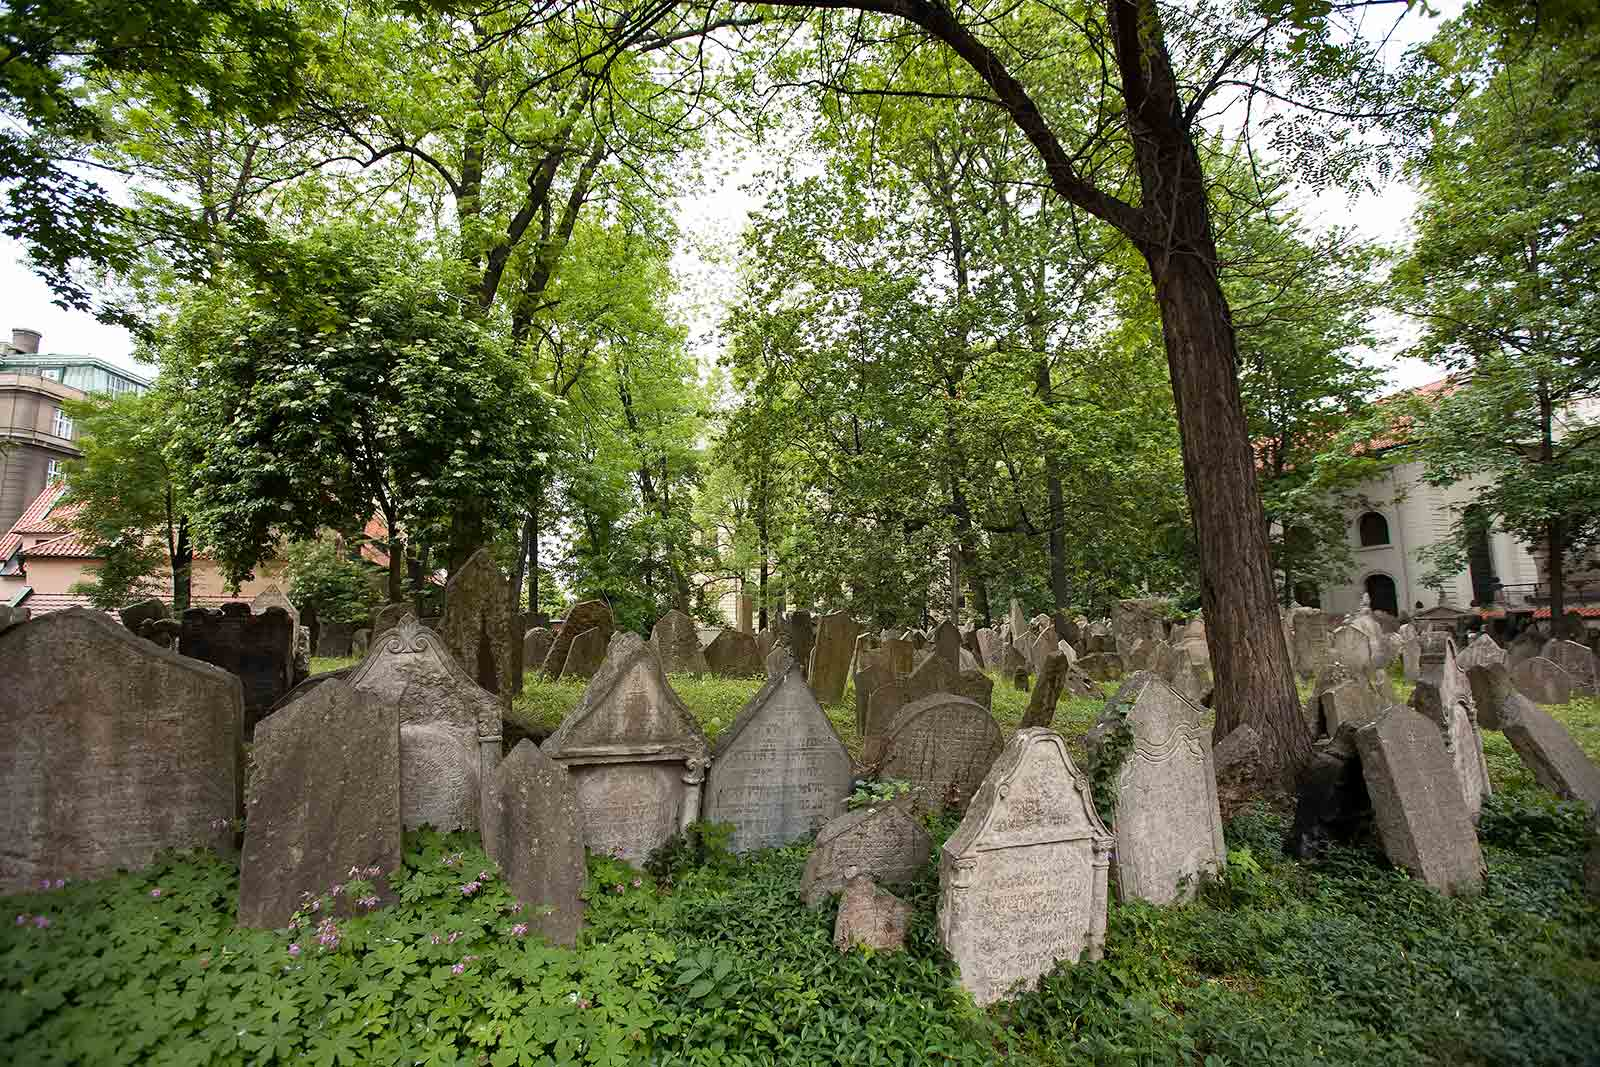 The Old Jewish Cemetery is among the oldest surviving Jewish burial grounds in the world and along with the Old-New Synagogue, it's the most important site in the Jewish quarter of Prague.